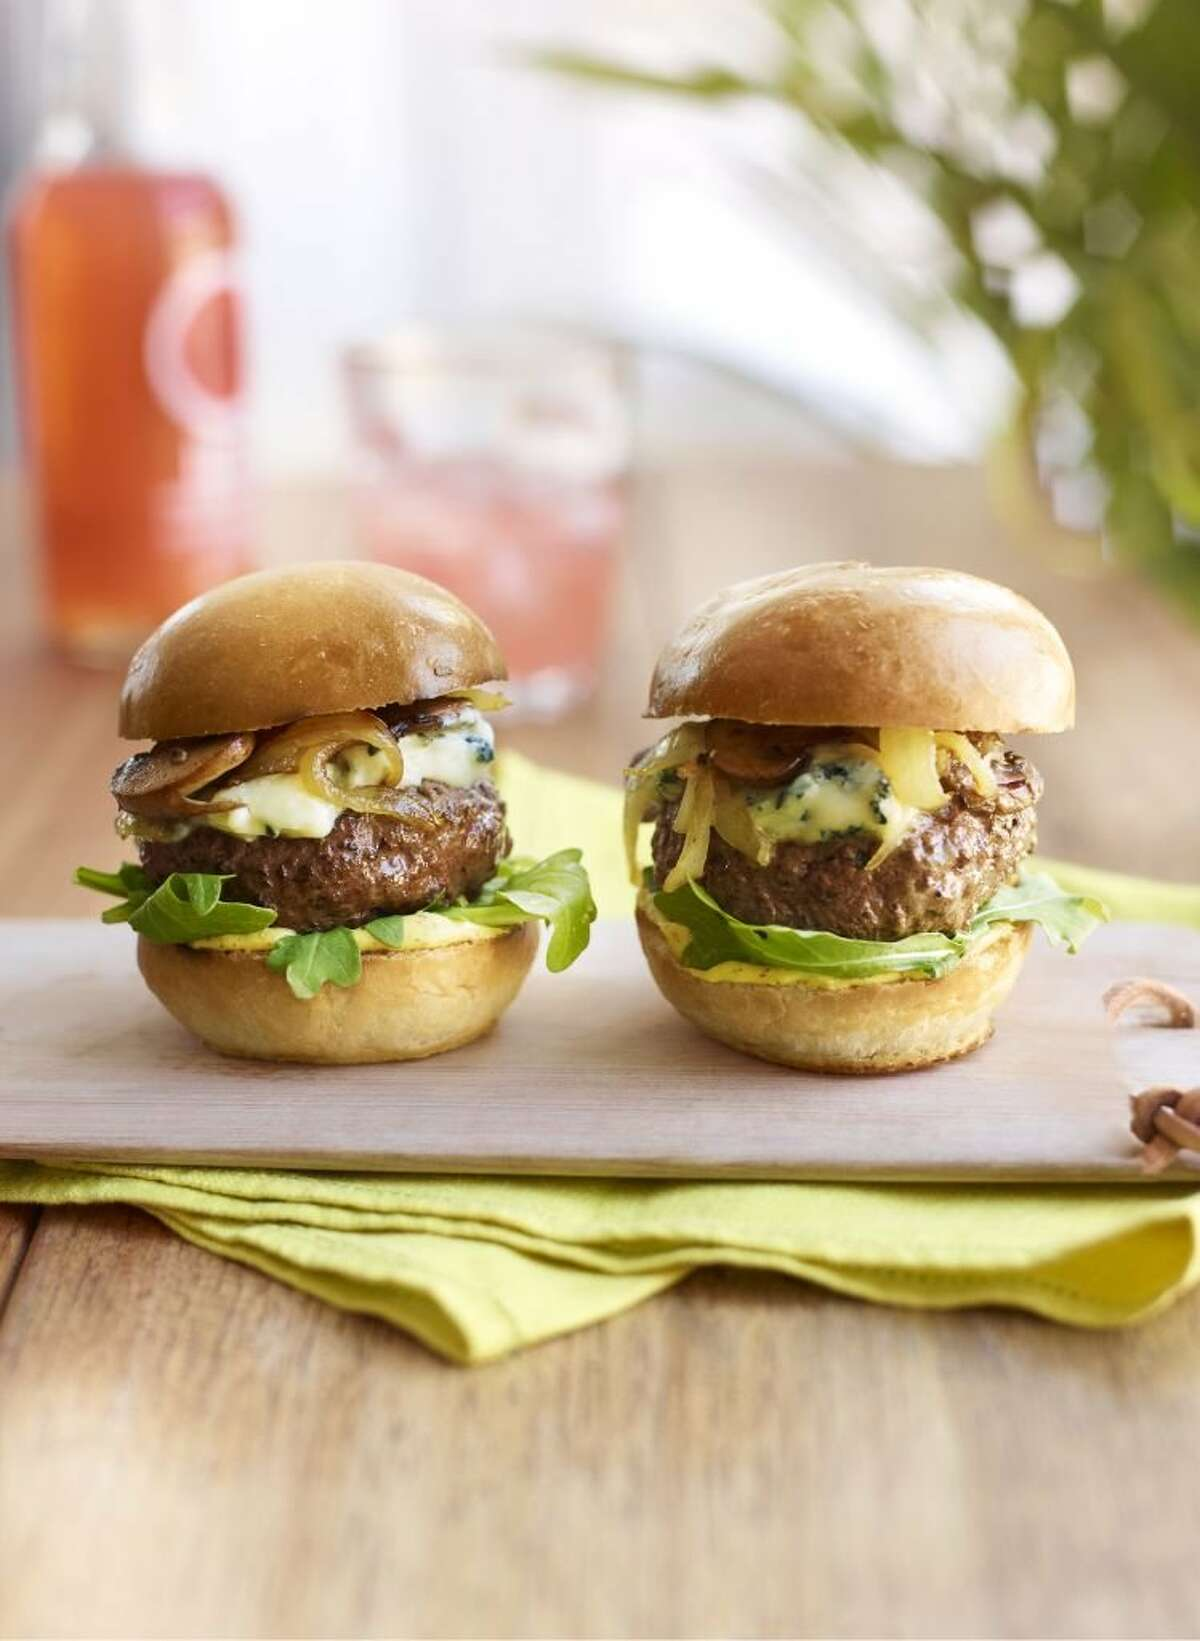 Delish0229: Redbook recipe for Steak-House Sliders with Mushrooms and Blue Cheese. PHOTO